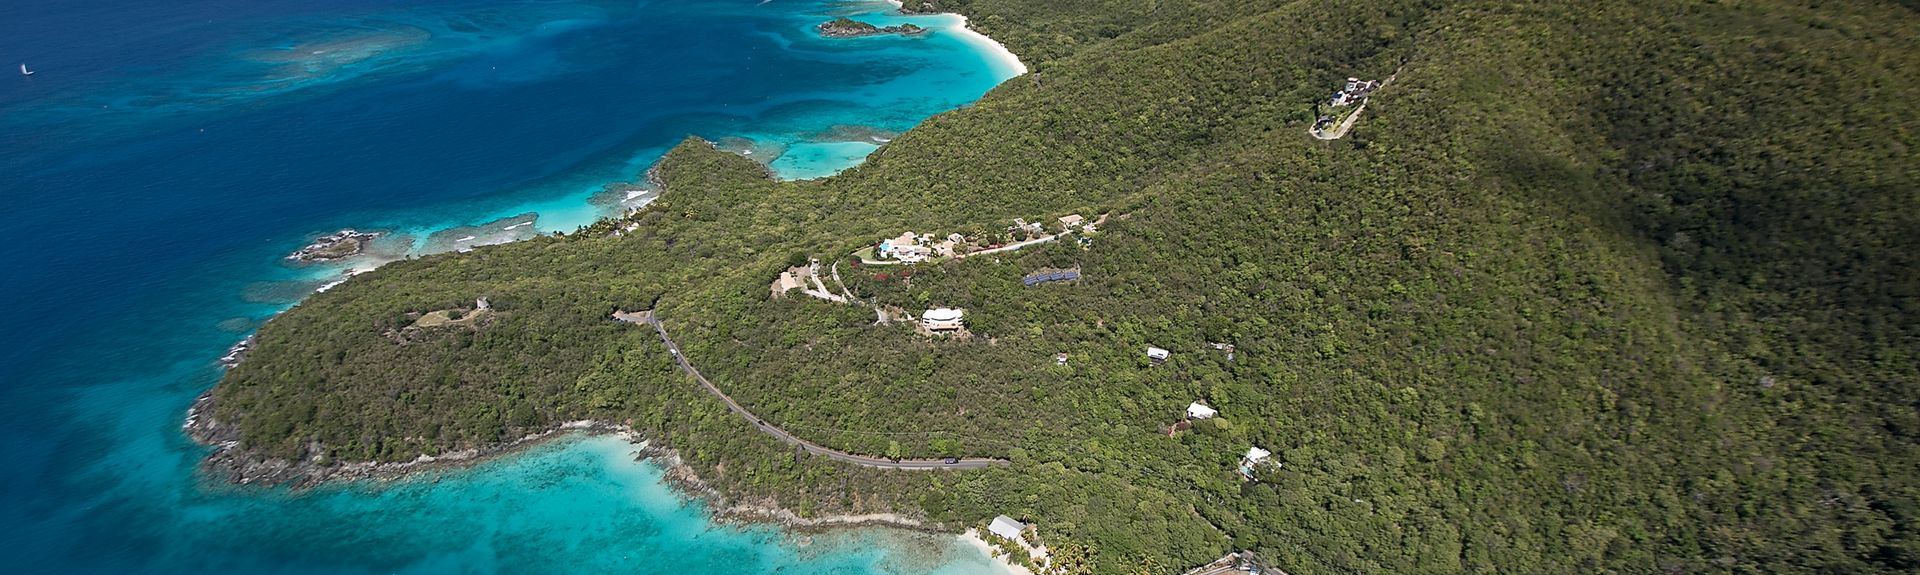 Estate Enighed, St. John, U.S. Virgin Islands